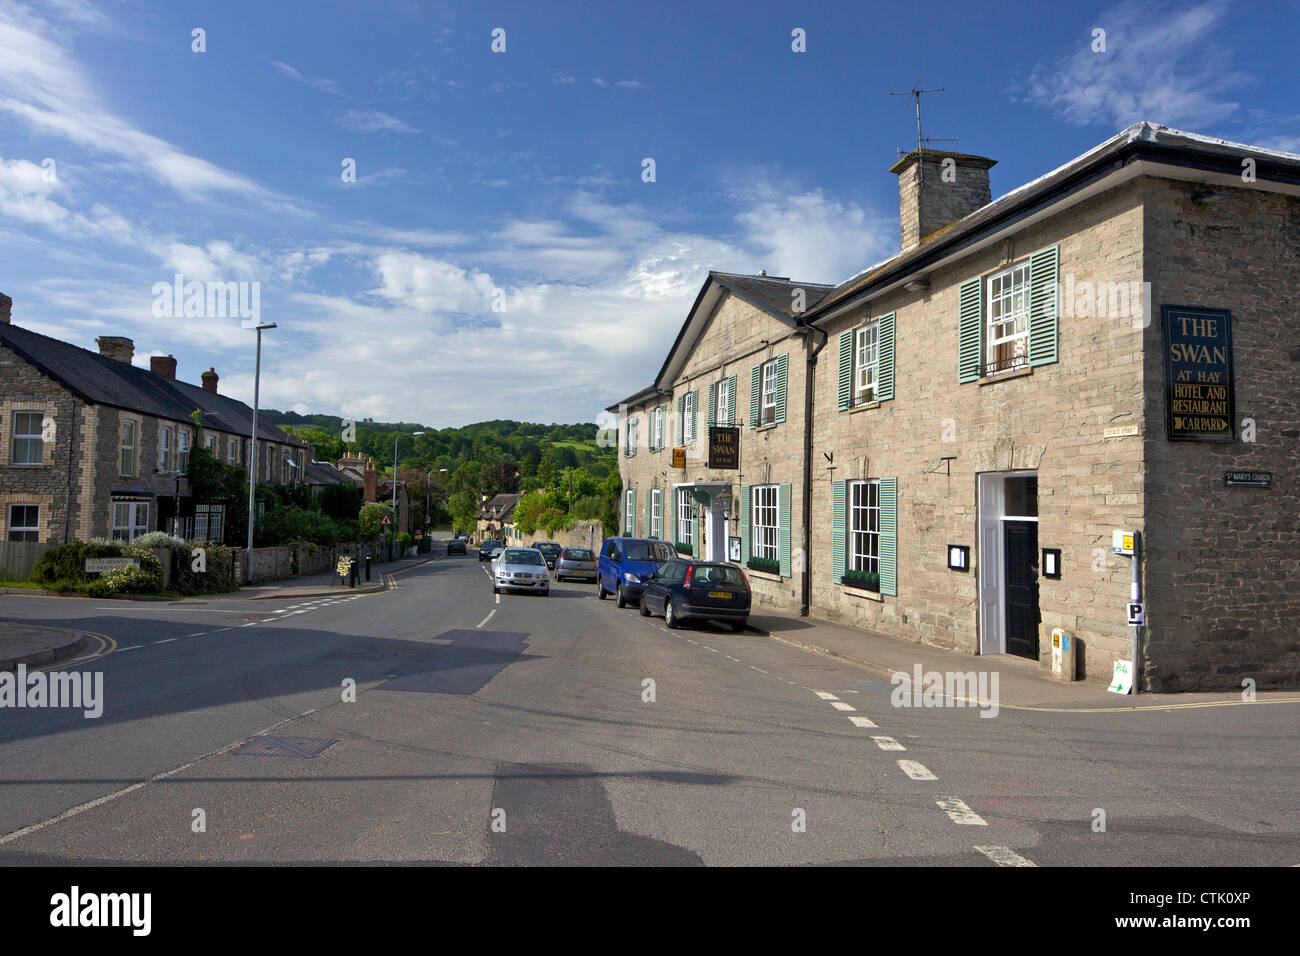 The Swan Hotel and Restaurant at Hay-on-Wye, Powys, Wales, Cymru, UK, United Kingdom, GB, Great Britain, British - Stock Image